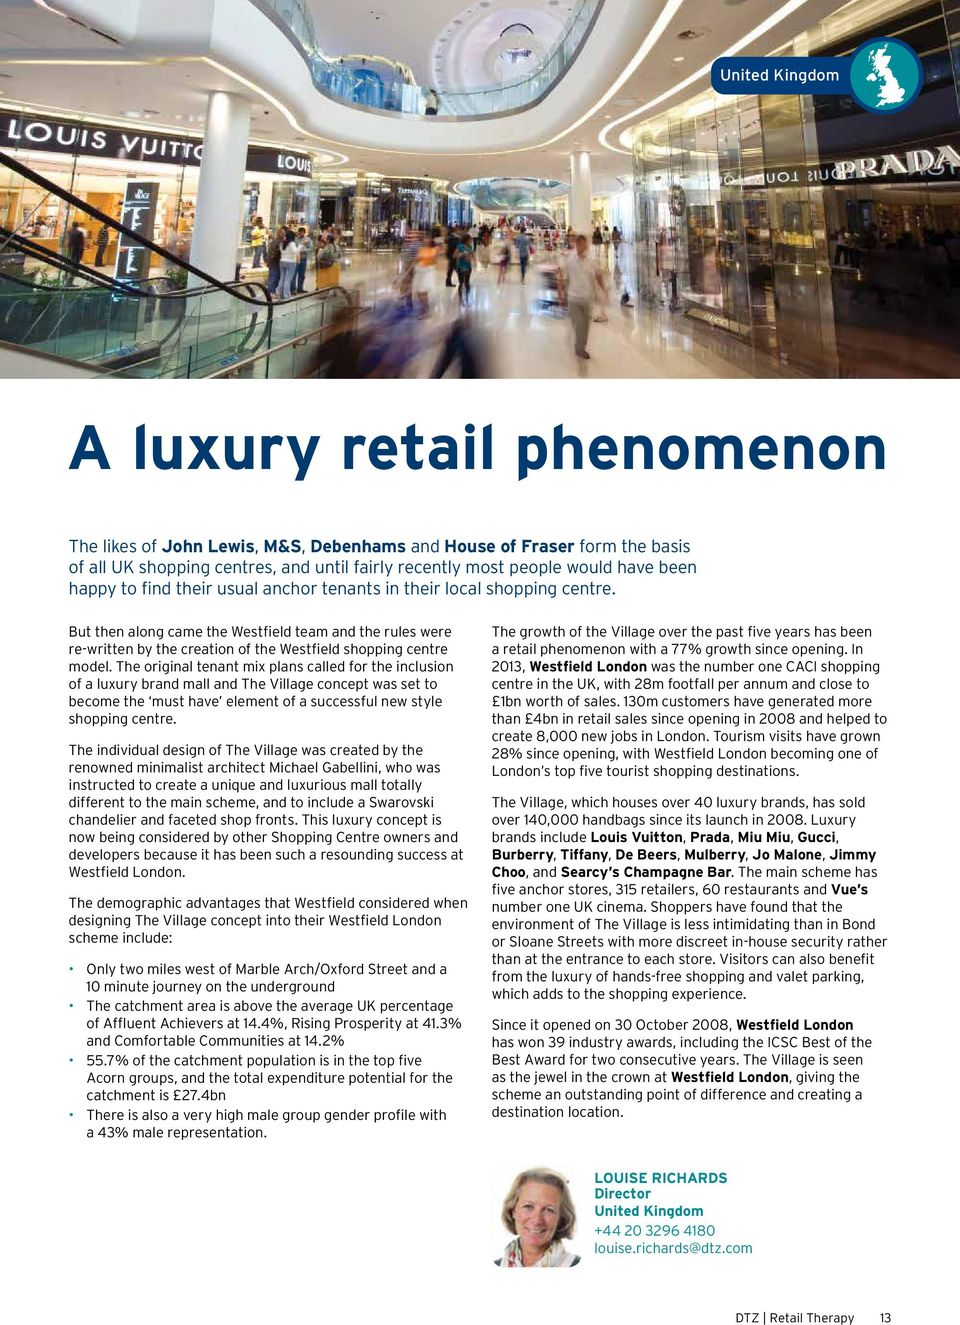 The original tenant mix plans called for the inclusion of a luxury brand mall and The Village concept was set to become the must have element of a successful new style shopping centre.